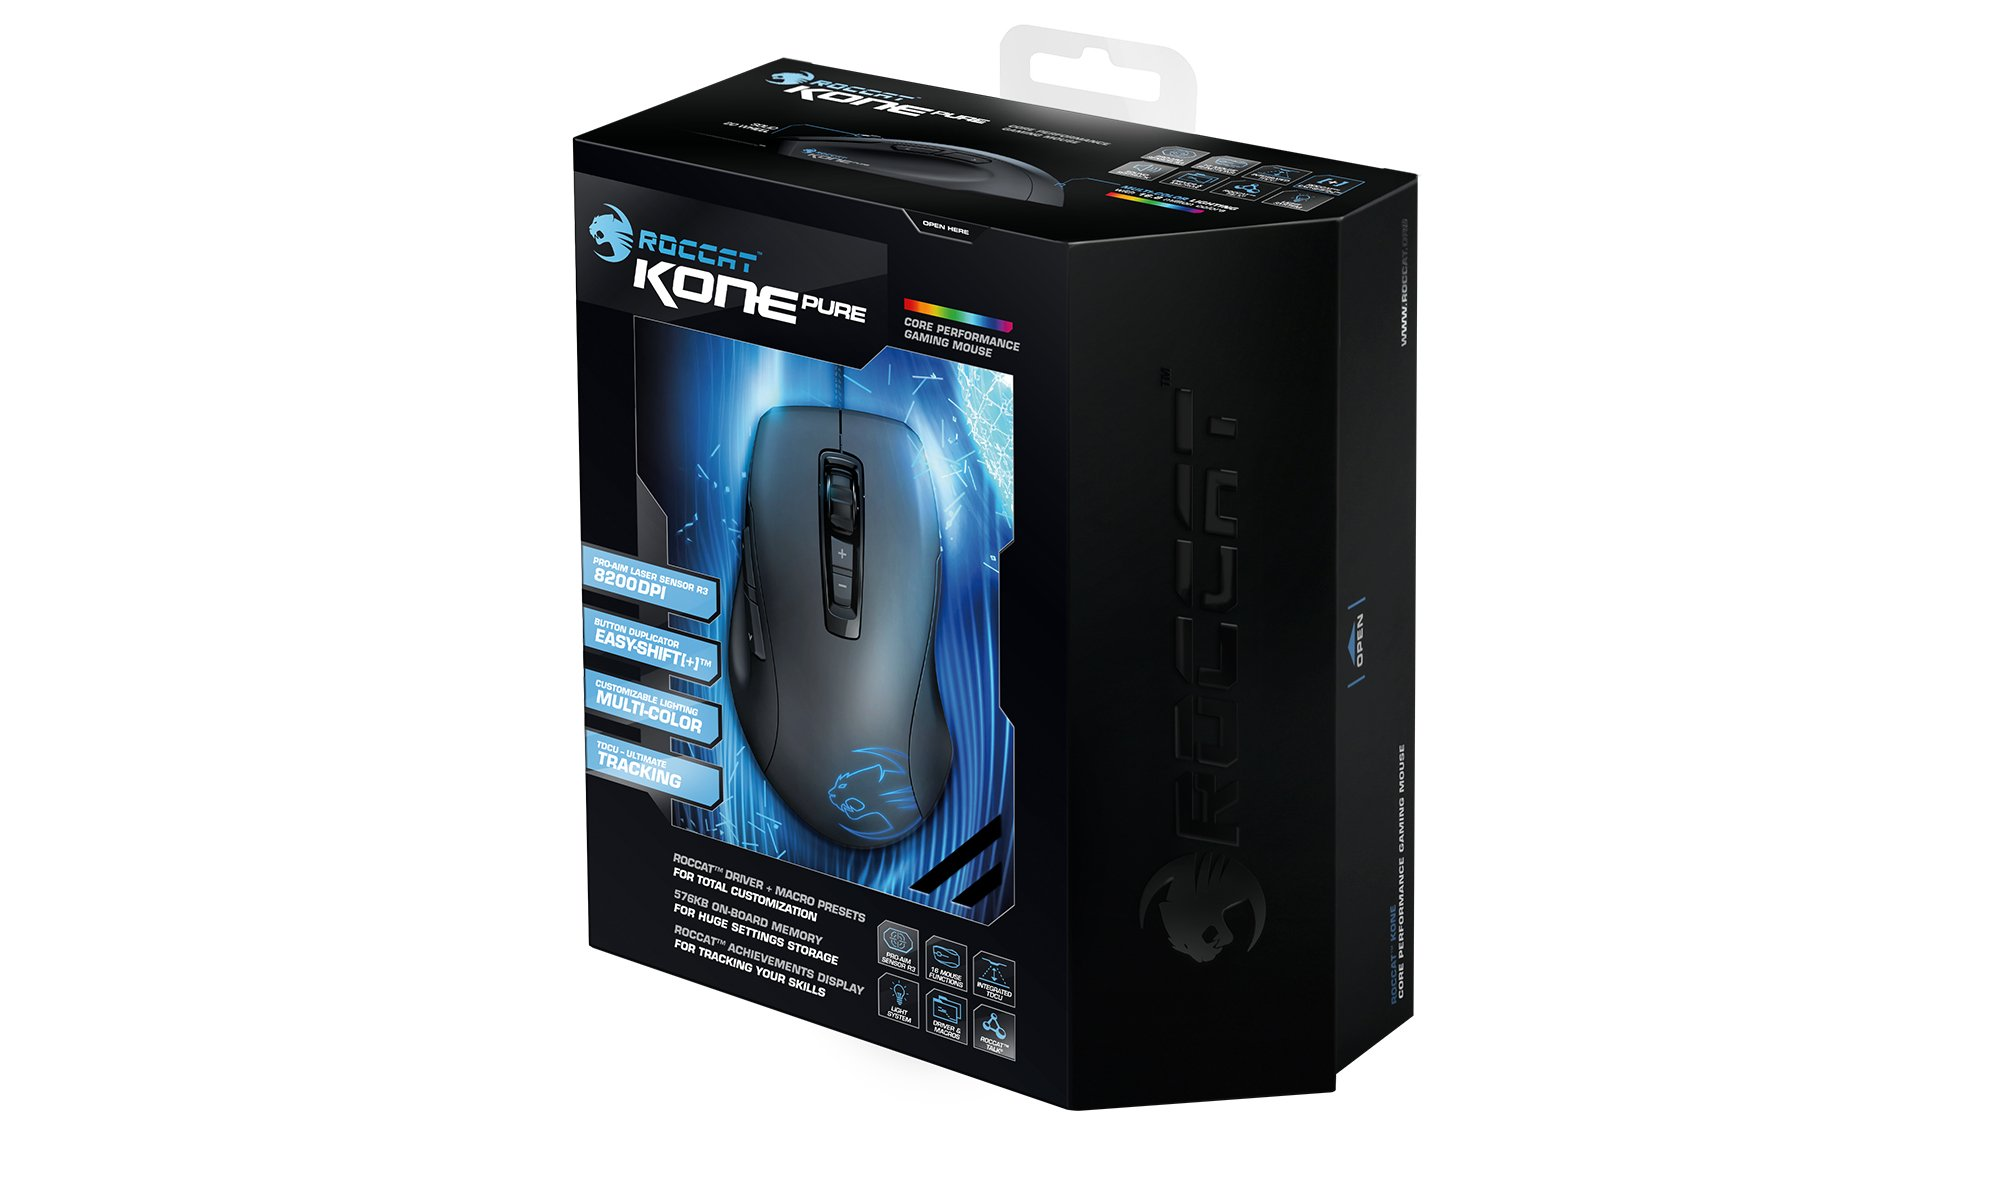 ROCCAT KONE Pure Core Performance Gaming Mouse by ROCCAT